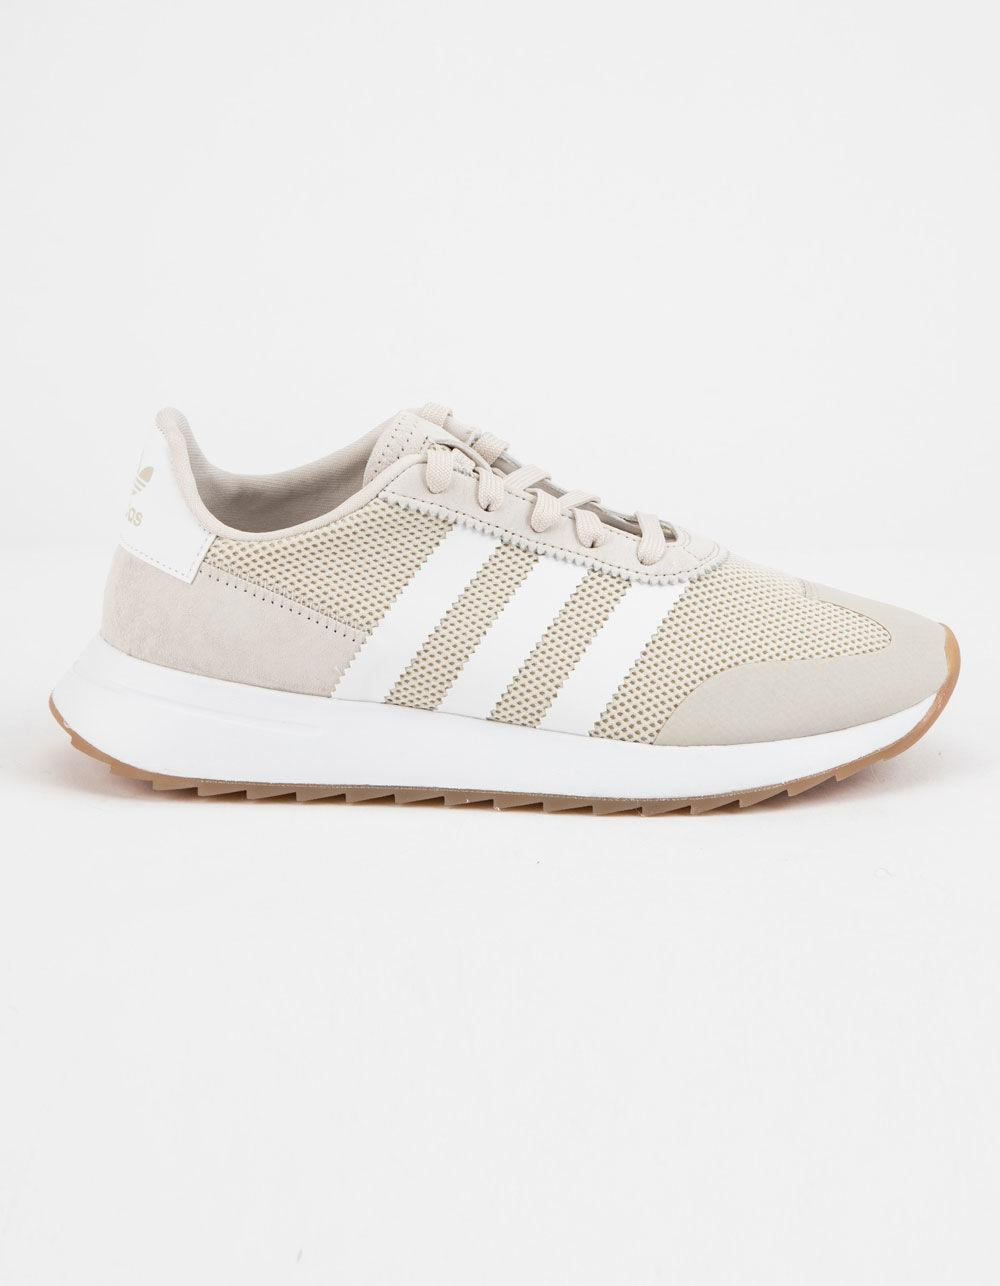 46e62d98ab1 Lyst - adidas Flashback Clear Brown   White Womens Shoes in White